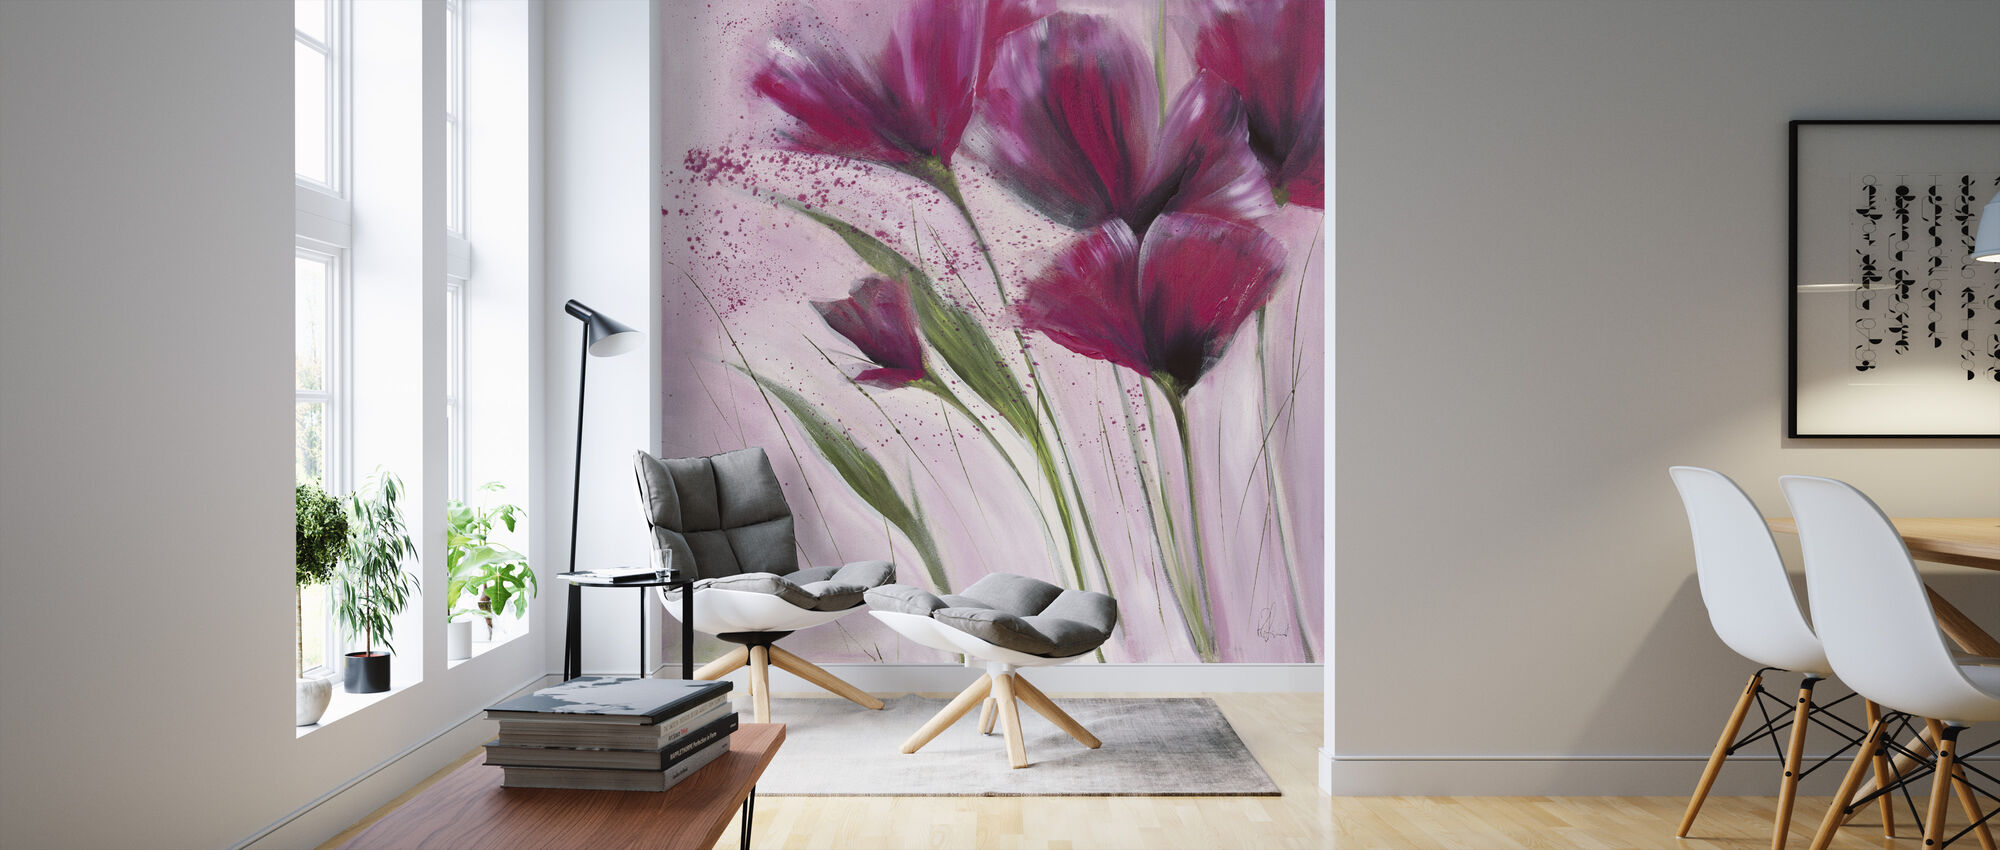 The Day in Pink II - Wallpaper - Living Room